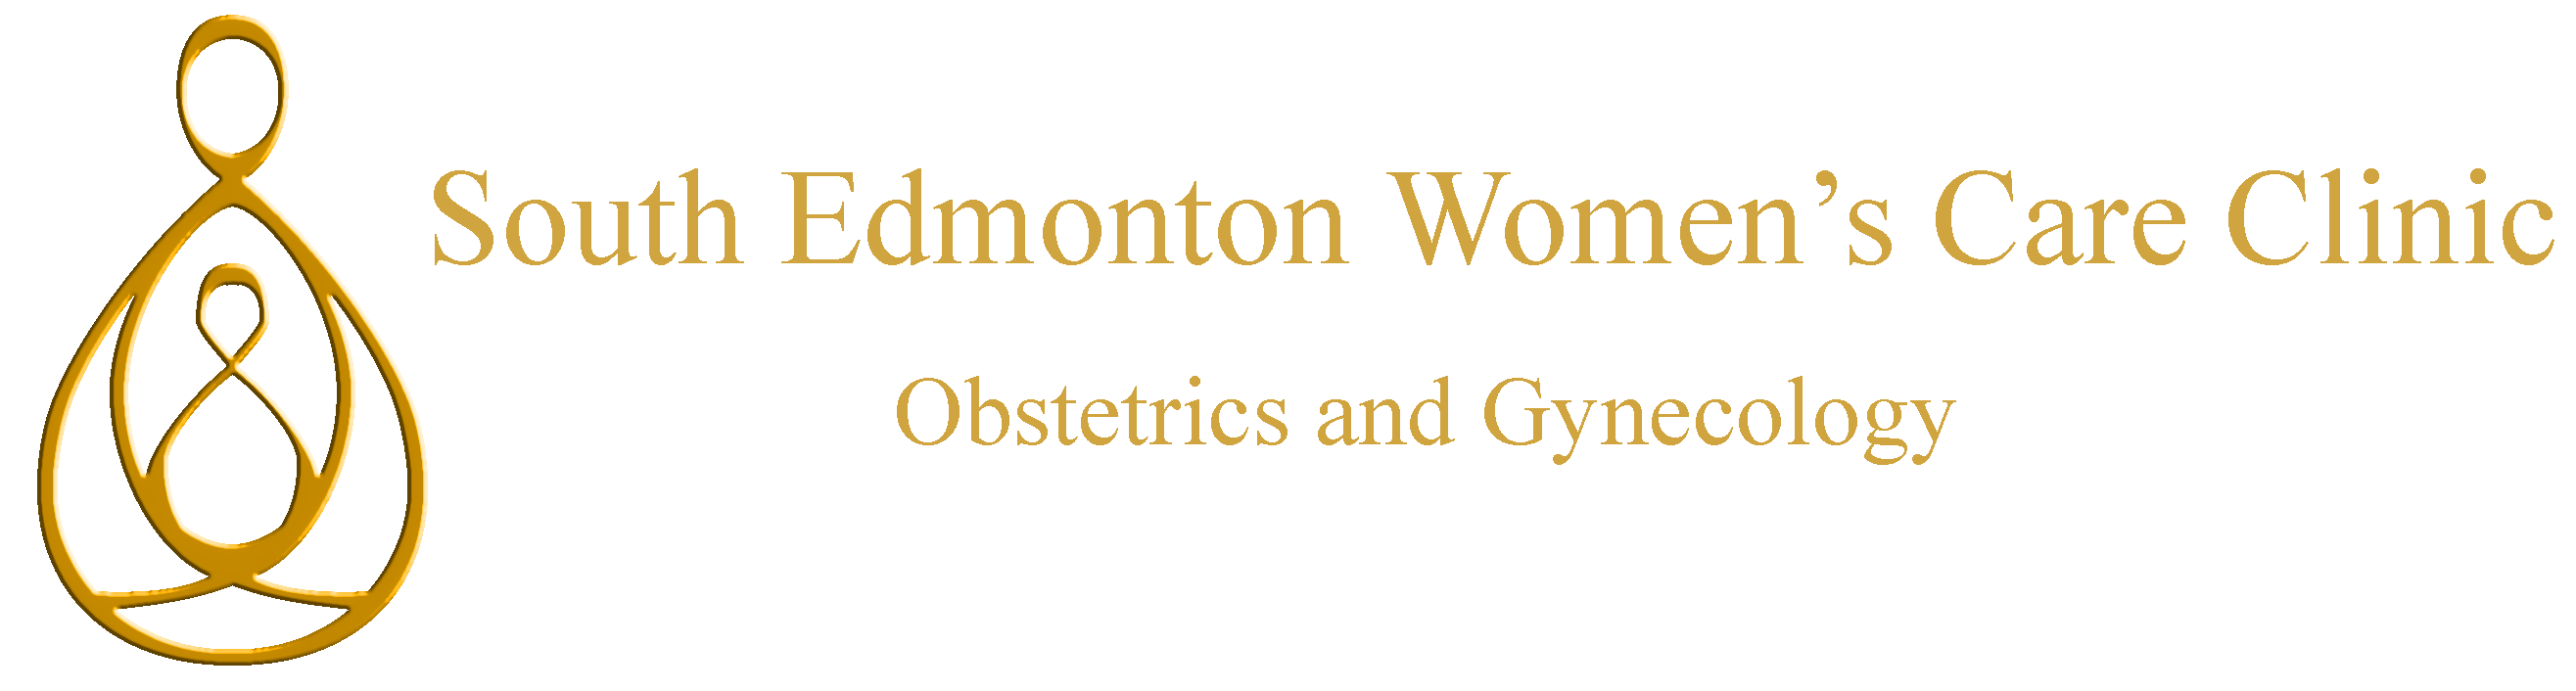 South Edmonton Women's Care Clinic